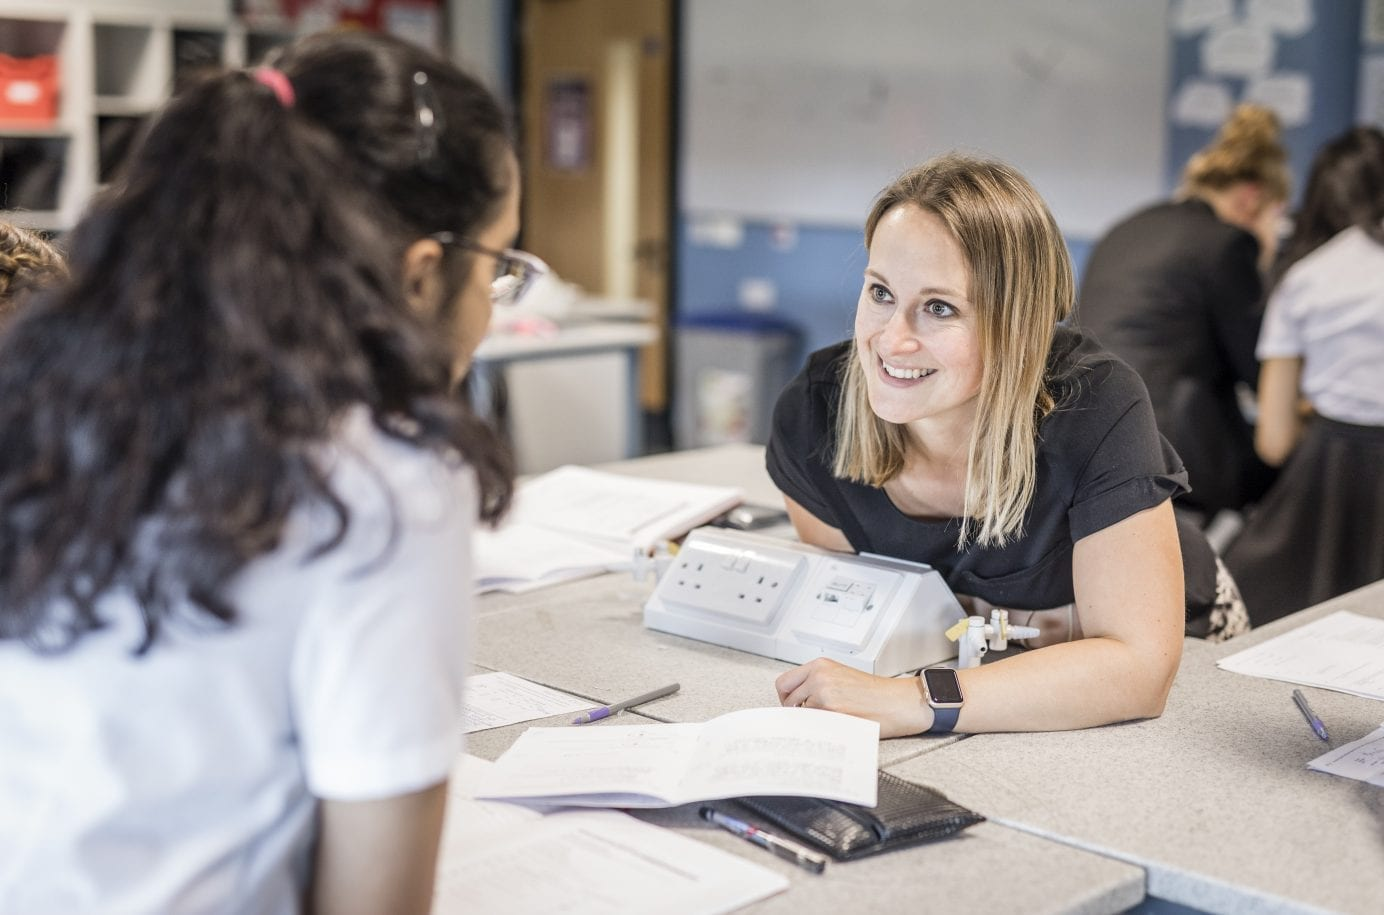 teacher smiling at her pupil, during a lesson, showing how teaching is changing